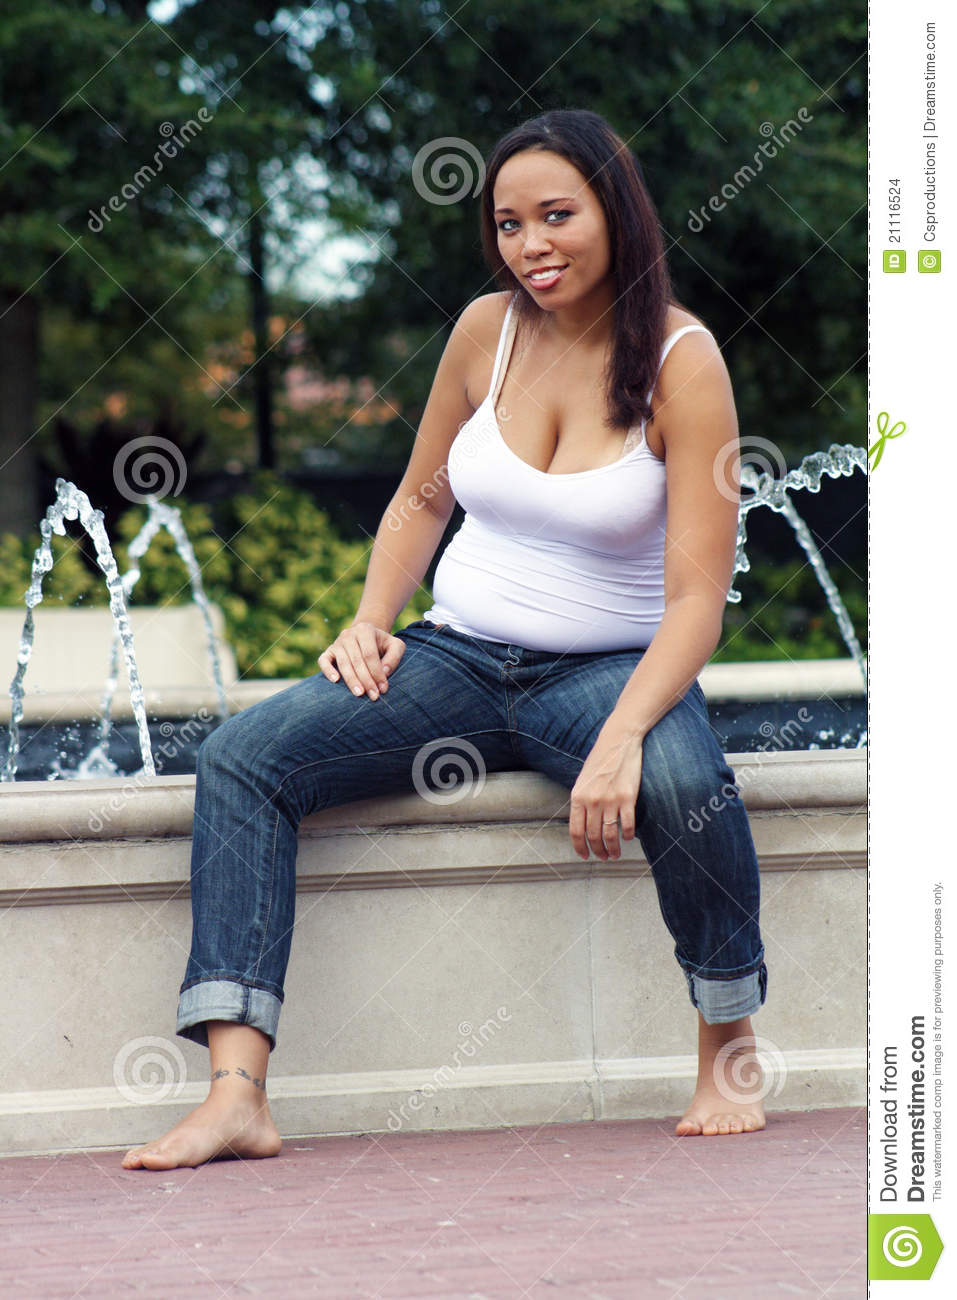 Multiracial Woman Five Months Pregnant  12  Stock Photo